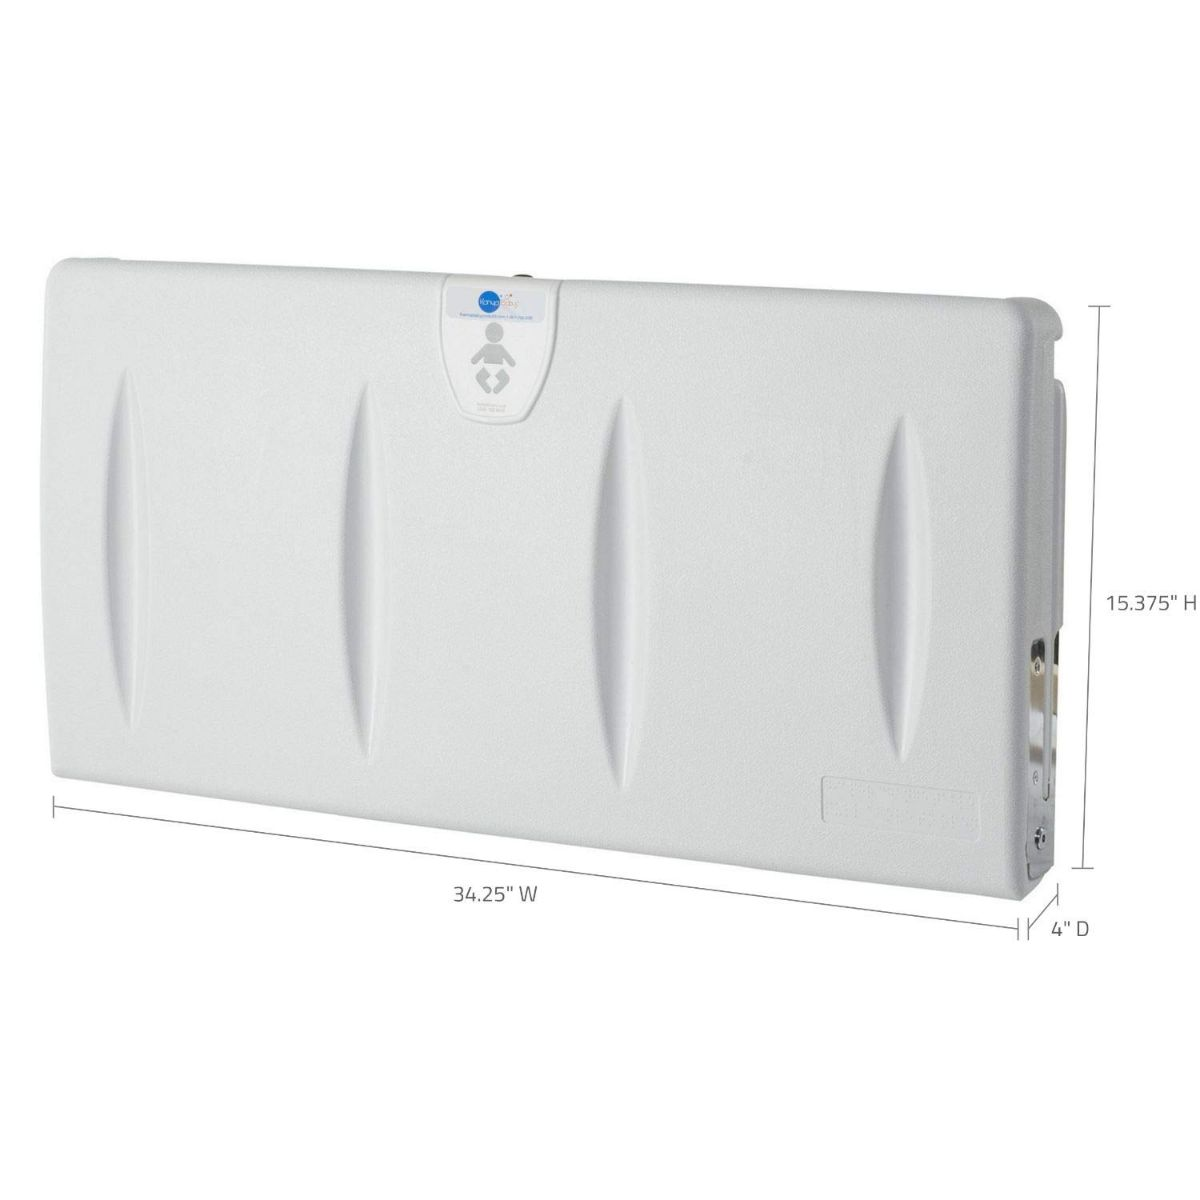 Karma Baby Wall Mounted Commercial Horizontal Diaper Changing Station - White